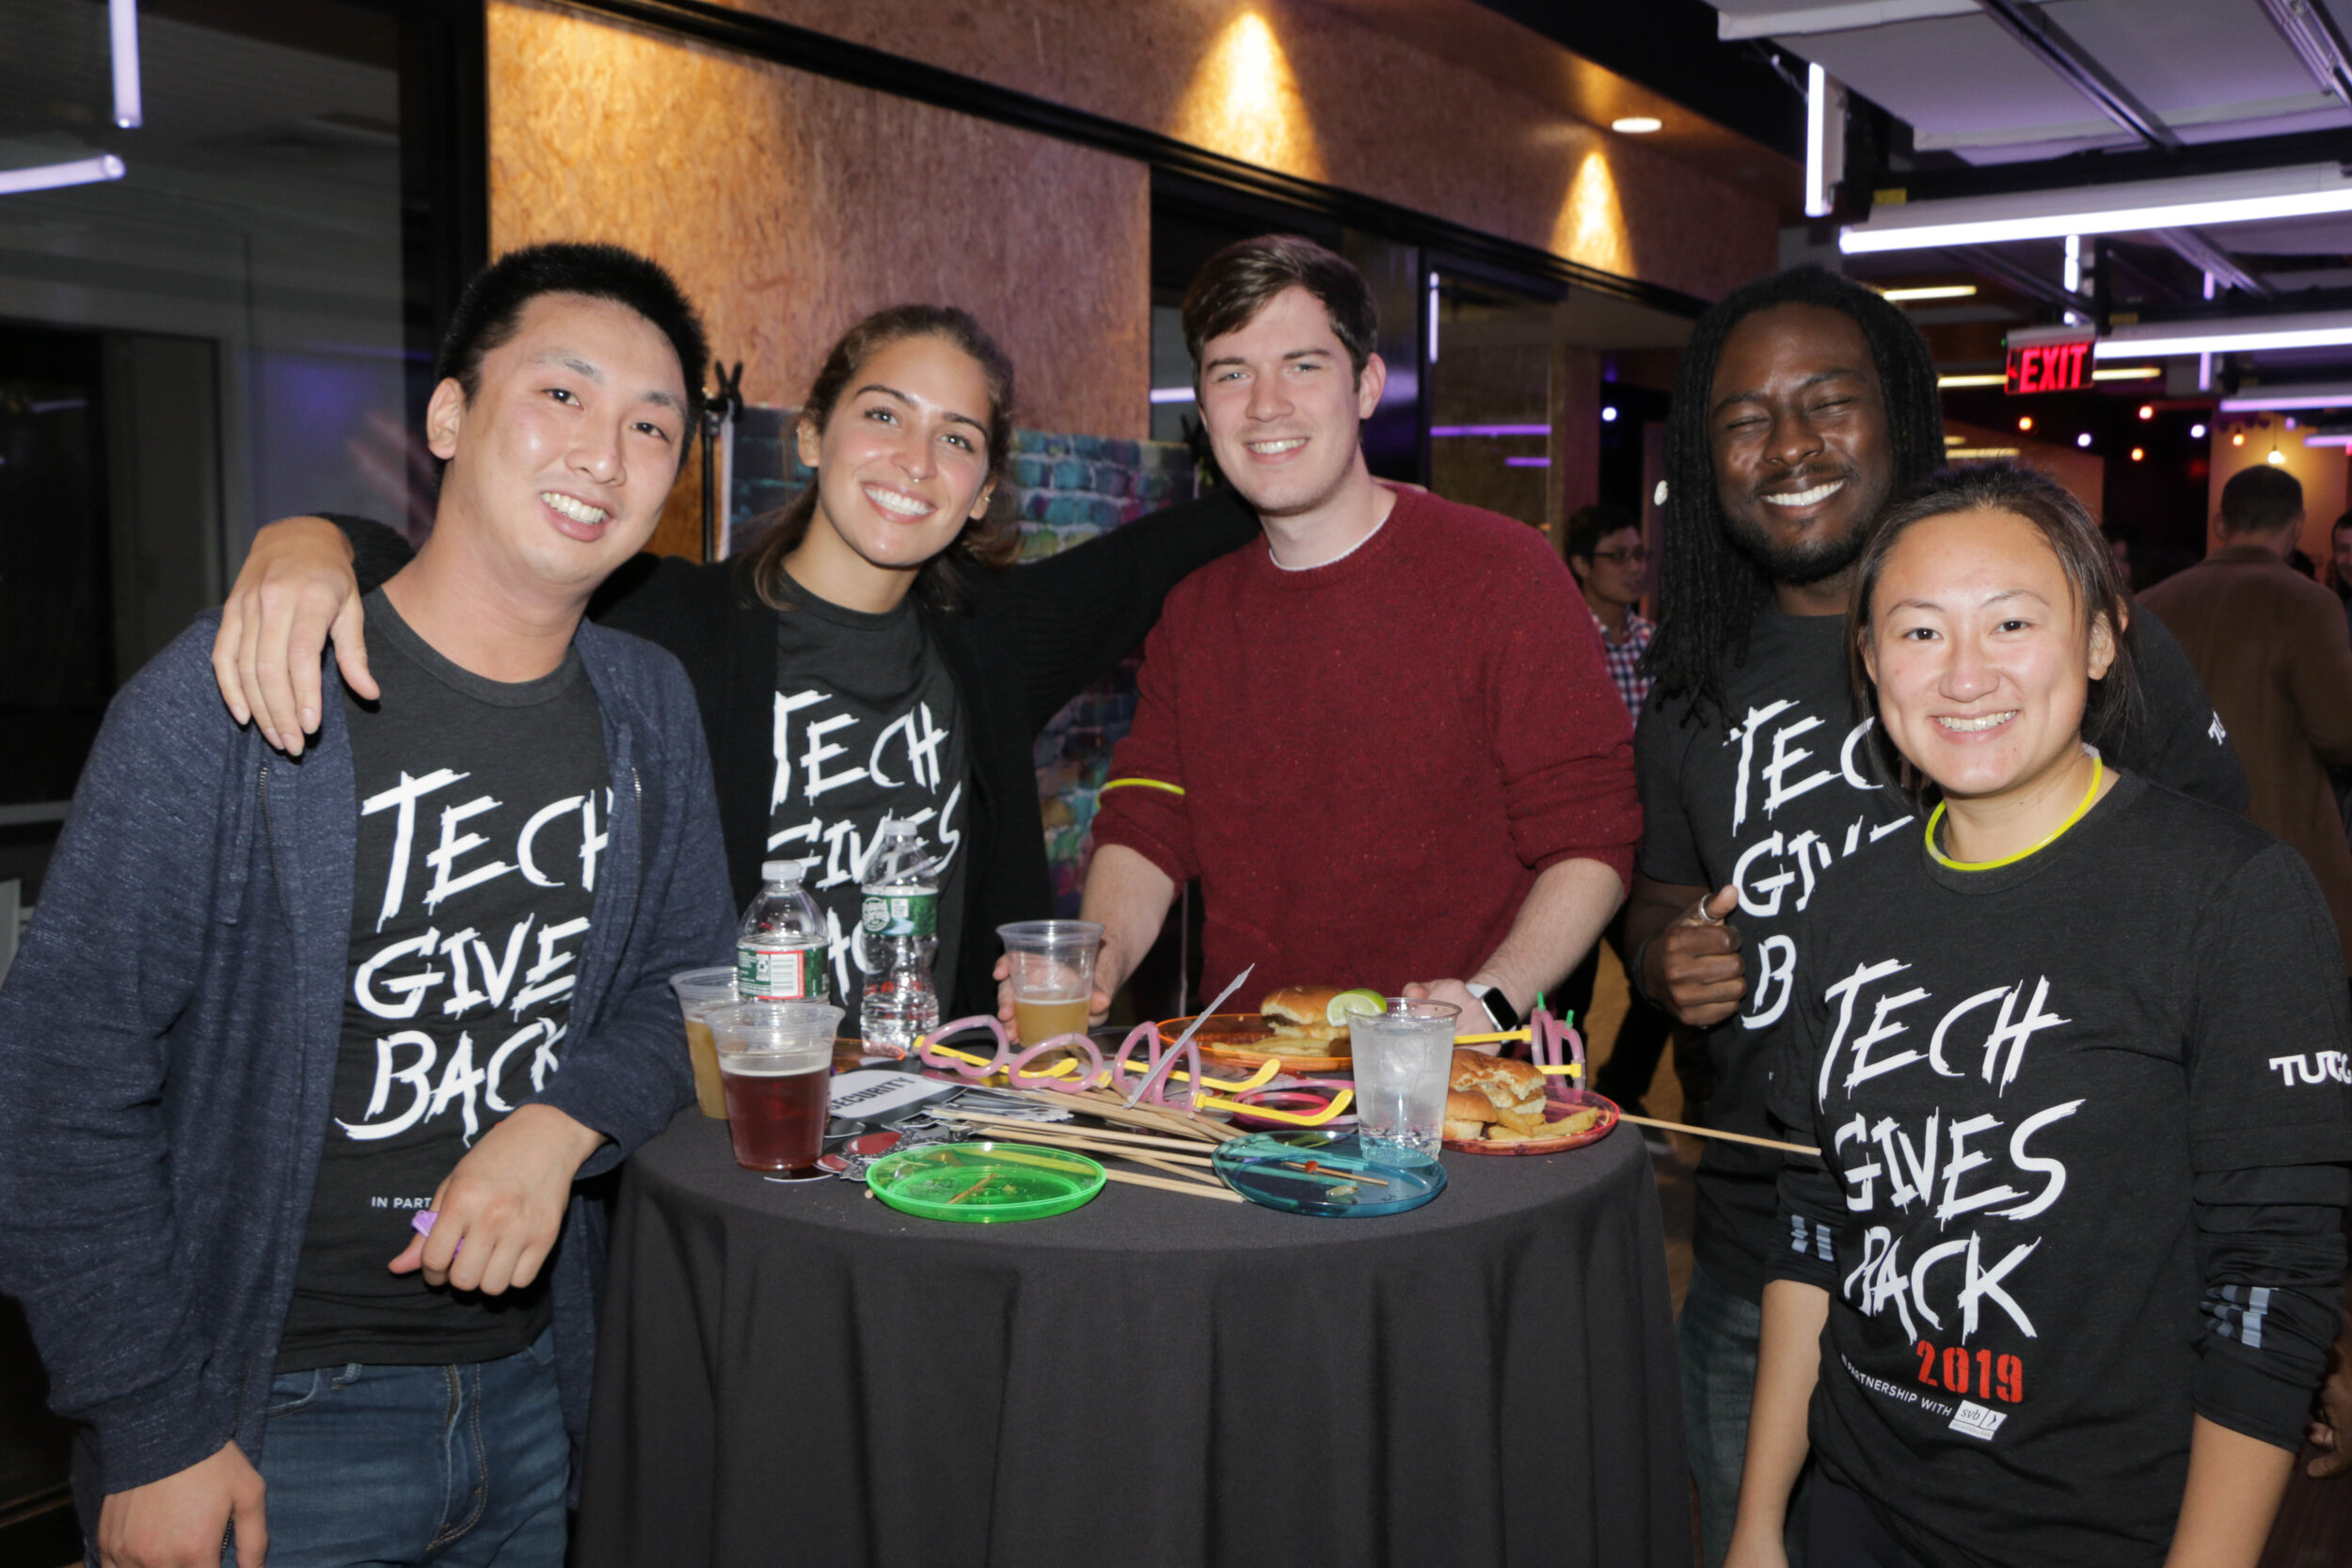 TUGG - Thank You Party - Oct 19 - Boston MA-8.jpg